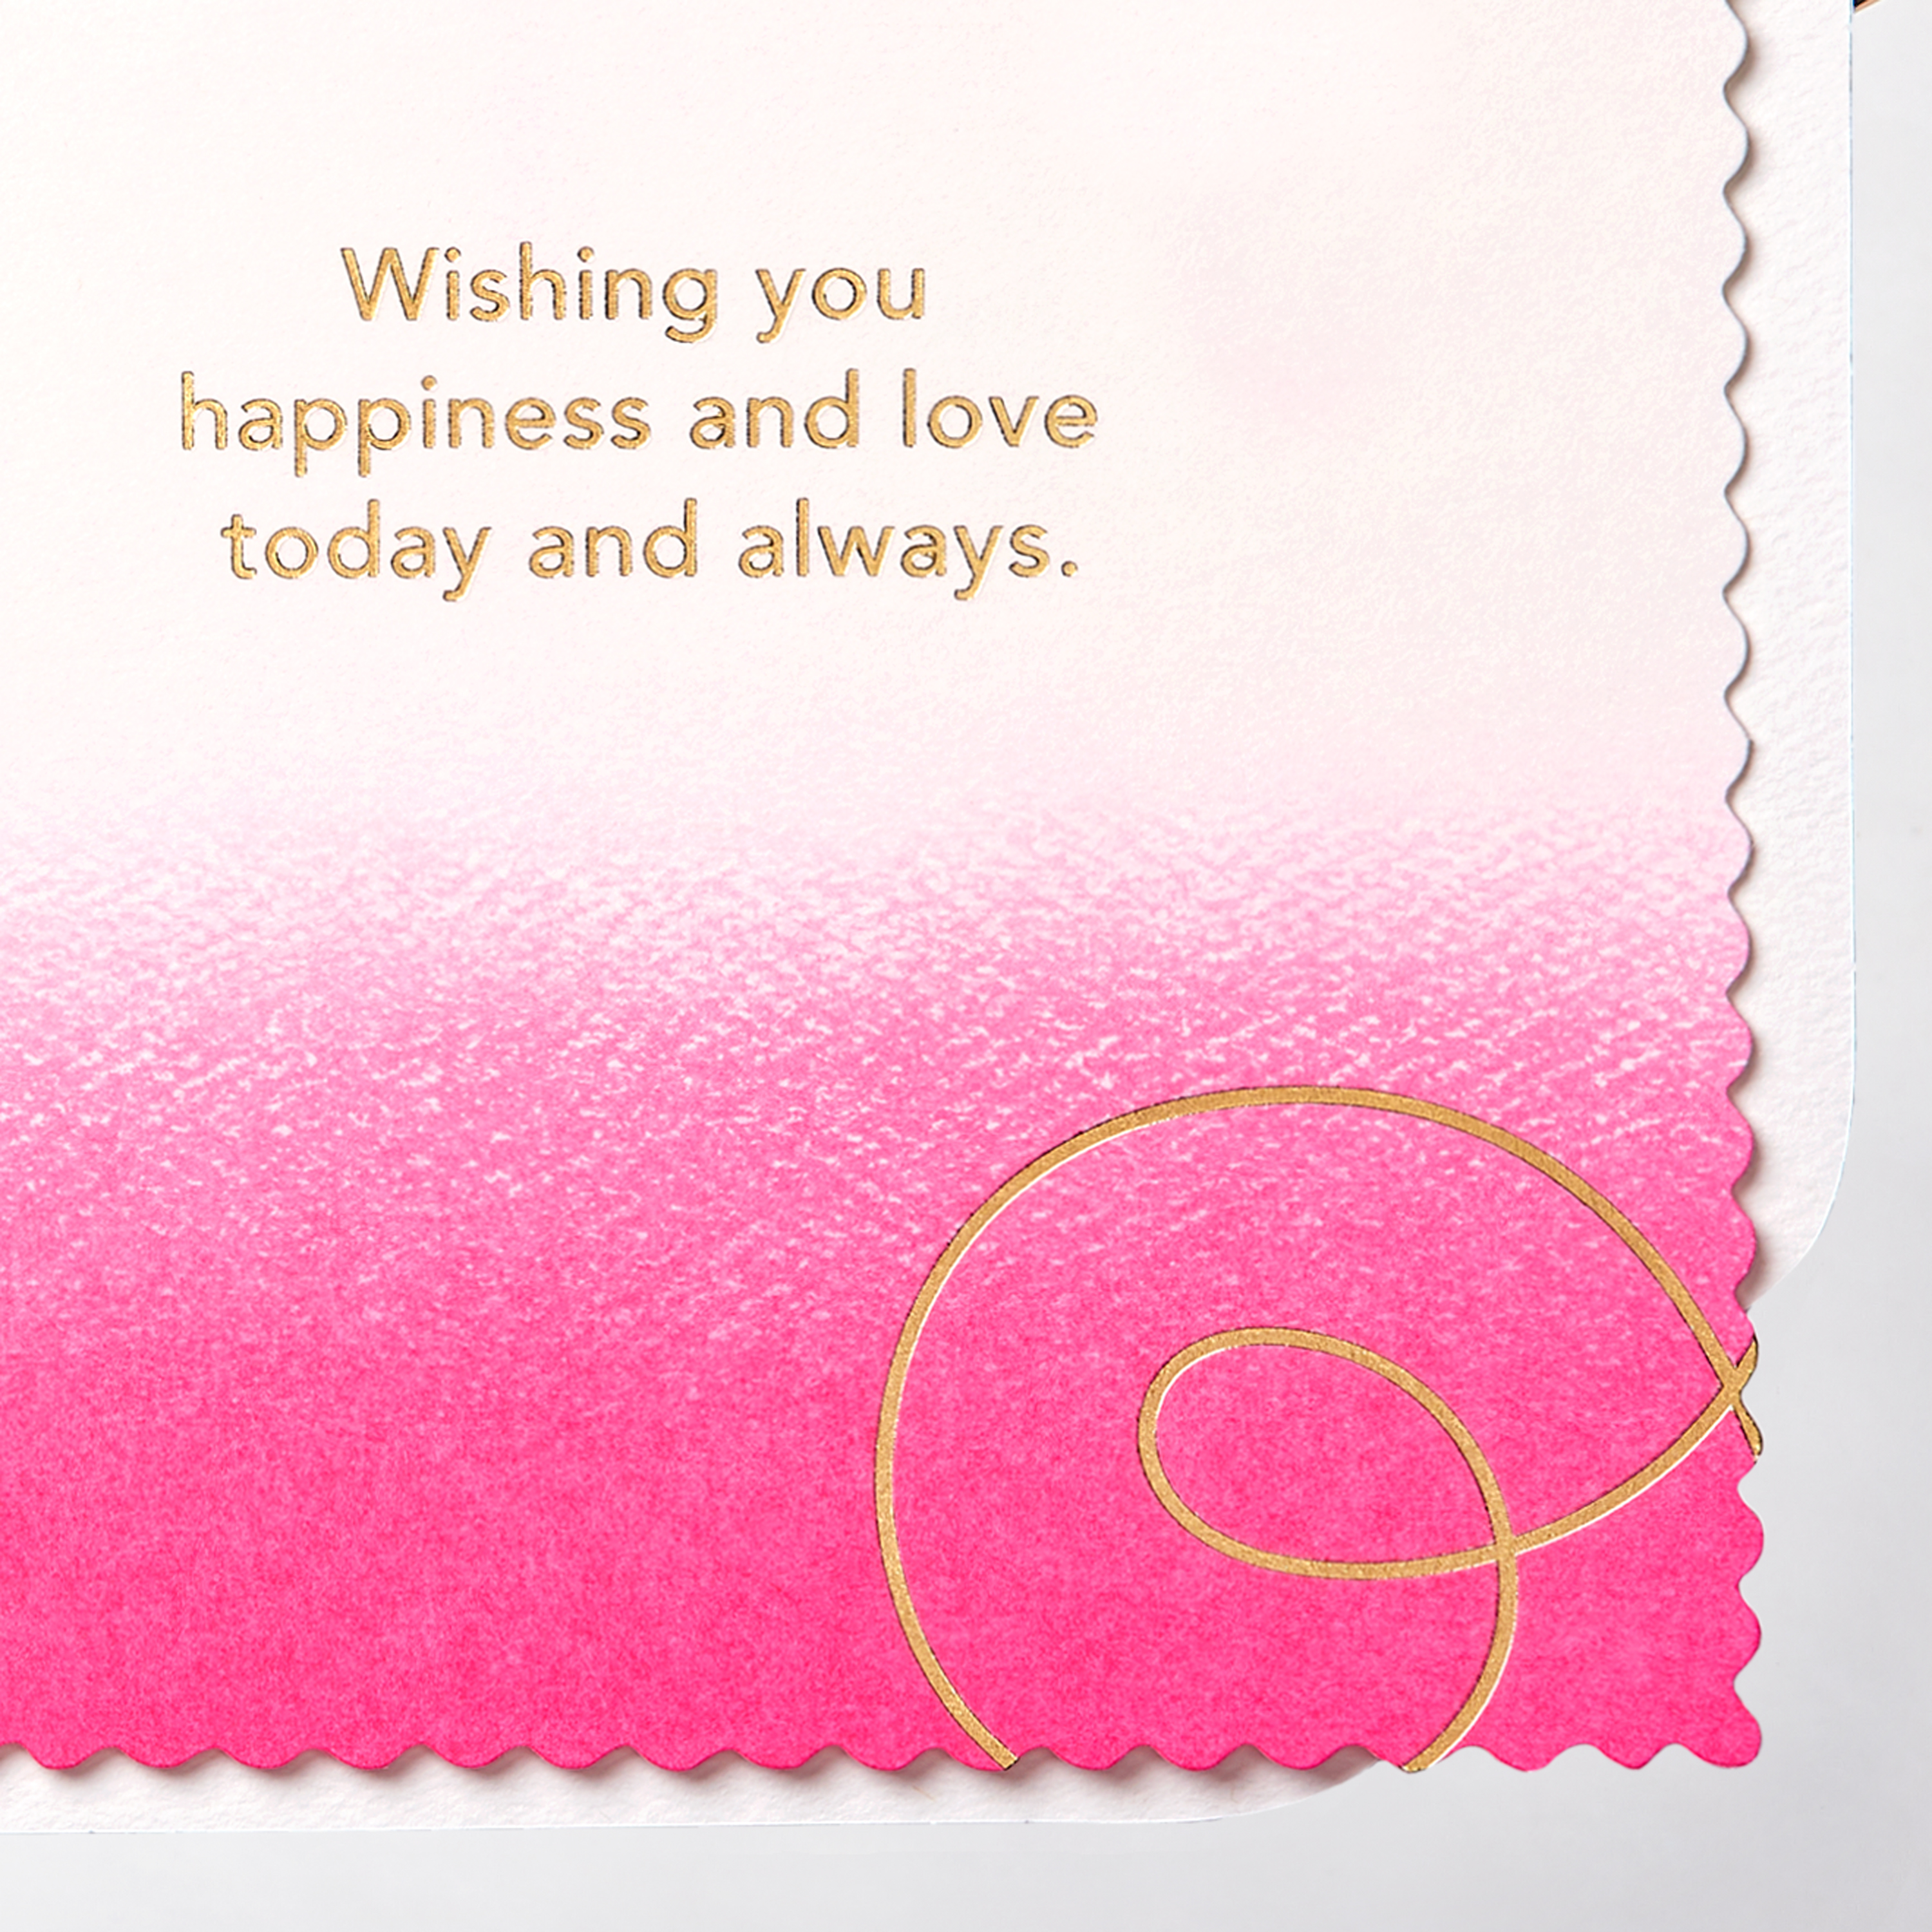 Marriage Greeting Card for Couple - Wedding, Anniversary image